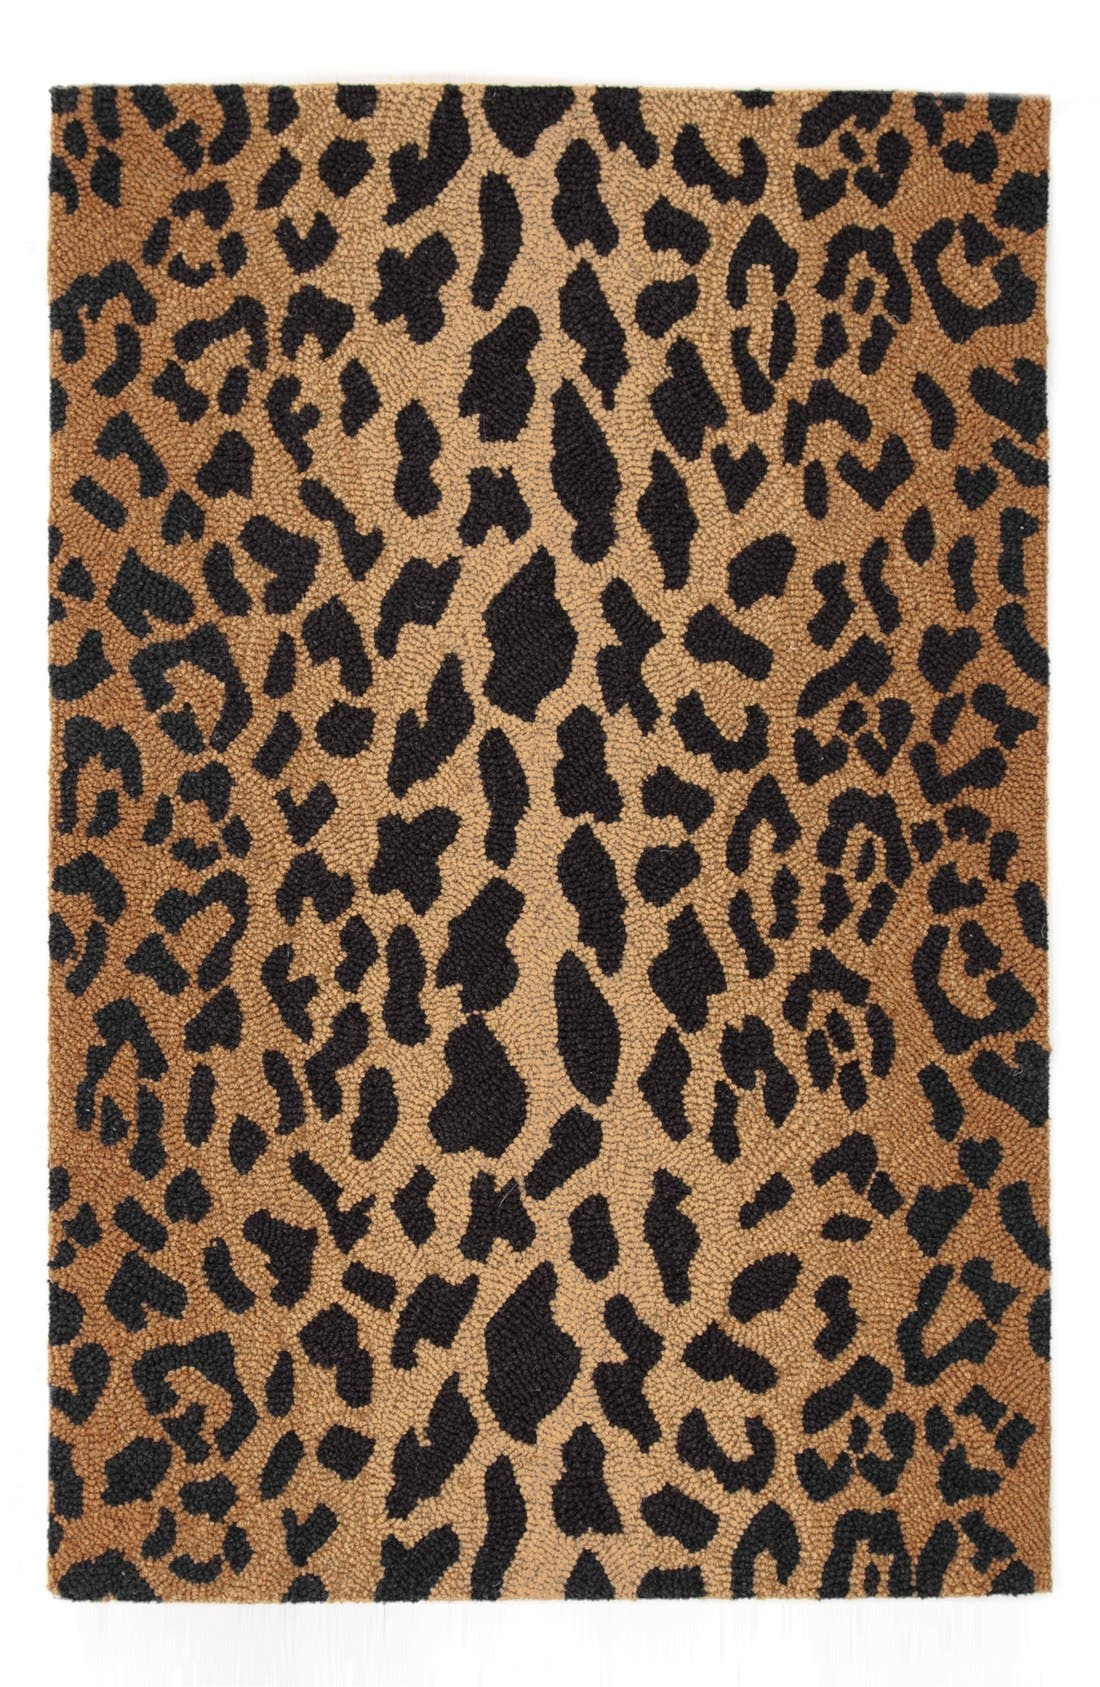 Leopard Print Wool Rug,                             Main thumbnail 1, color,                             Brown